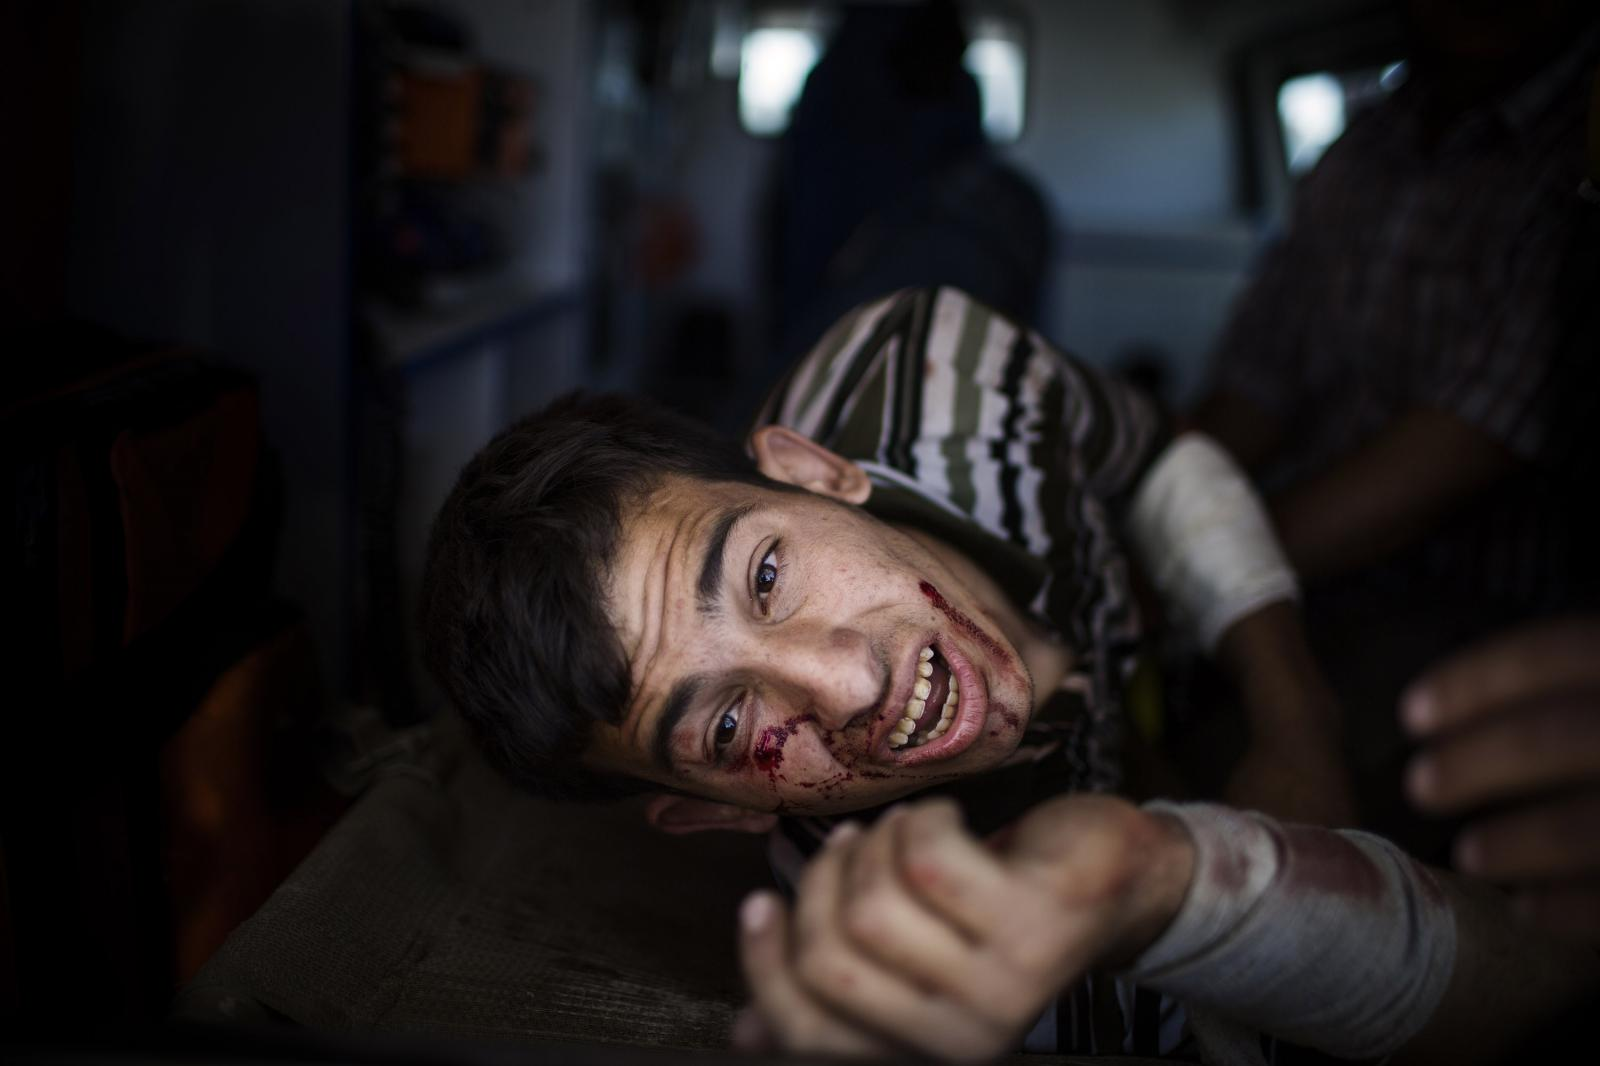 A man injured in a mortar attack lies inside an ambulance after being treated by medics in a field clinic as Iraqi forces battle with Islamic State- Mosul. Iraq, April 2017. Diego Ibarra Sanchez